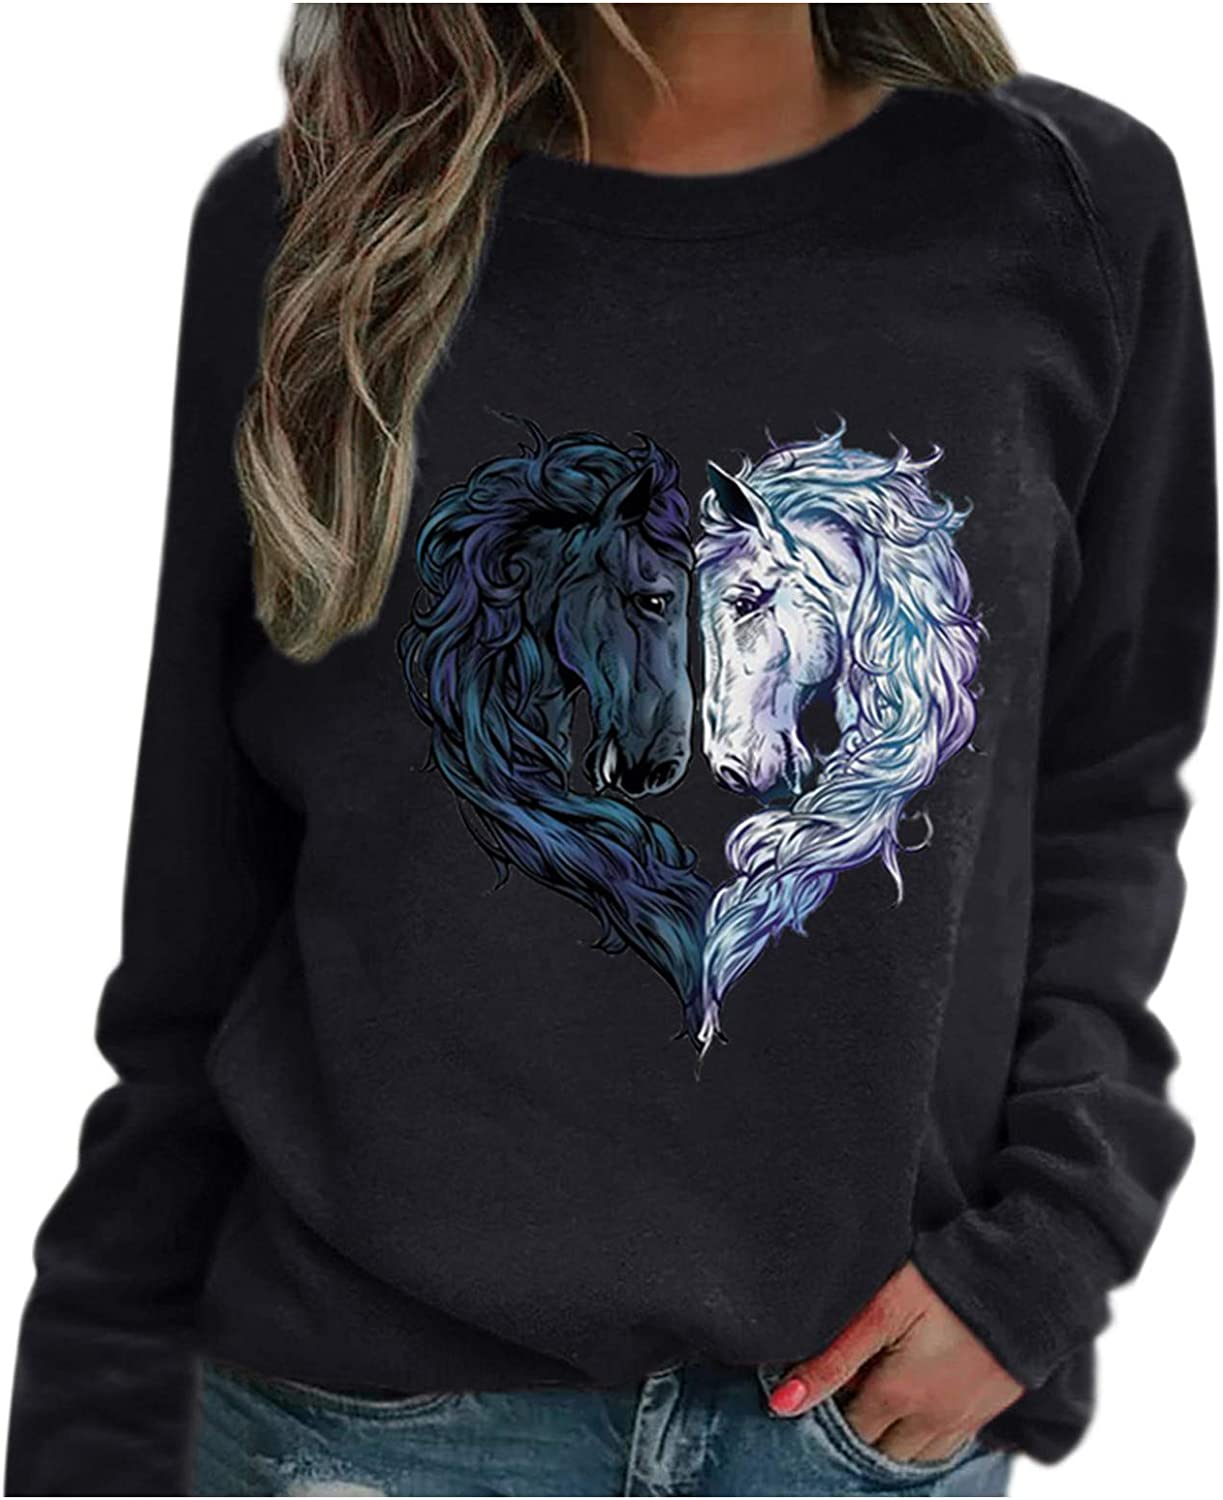 Ladies Shirt, Fashion Horse Head Heart-Shaped Printing Raglan Long-Sleeved Top Valentine's Day Pullover Tops Blouse